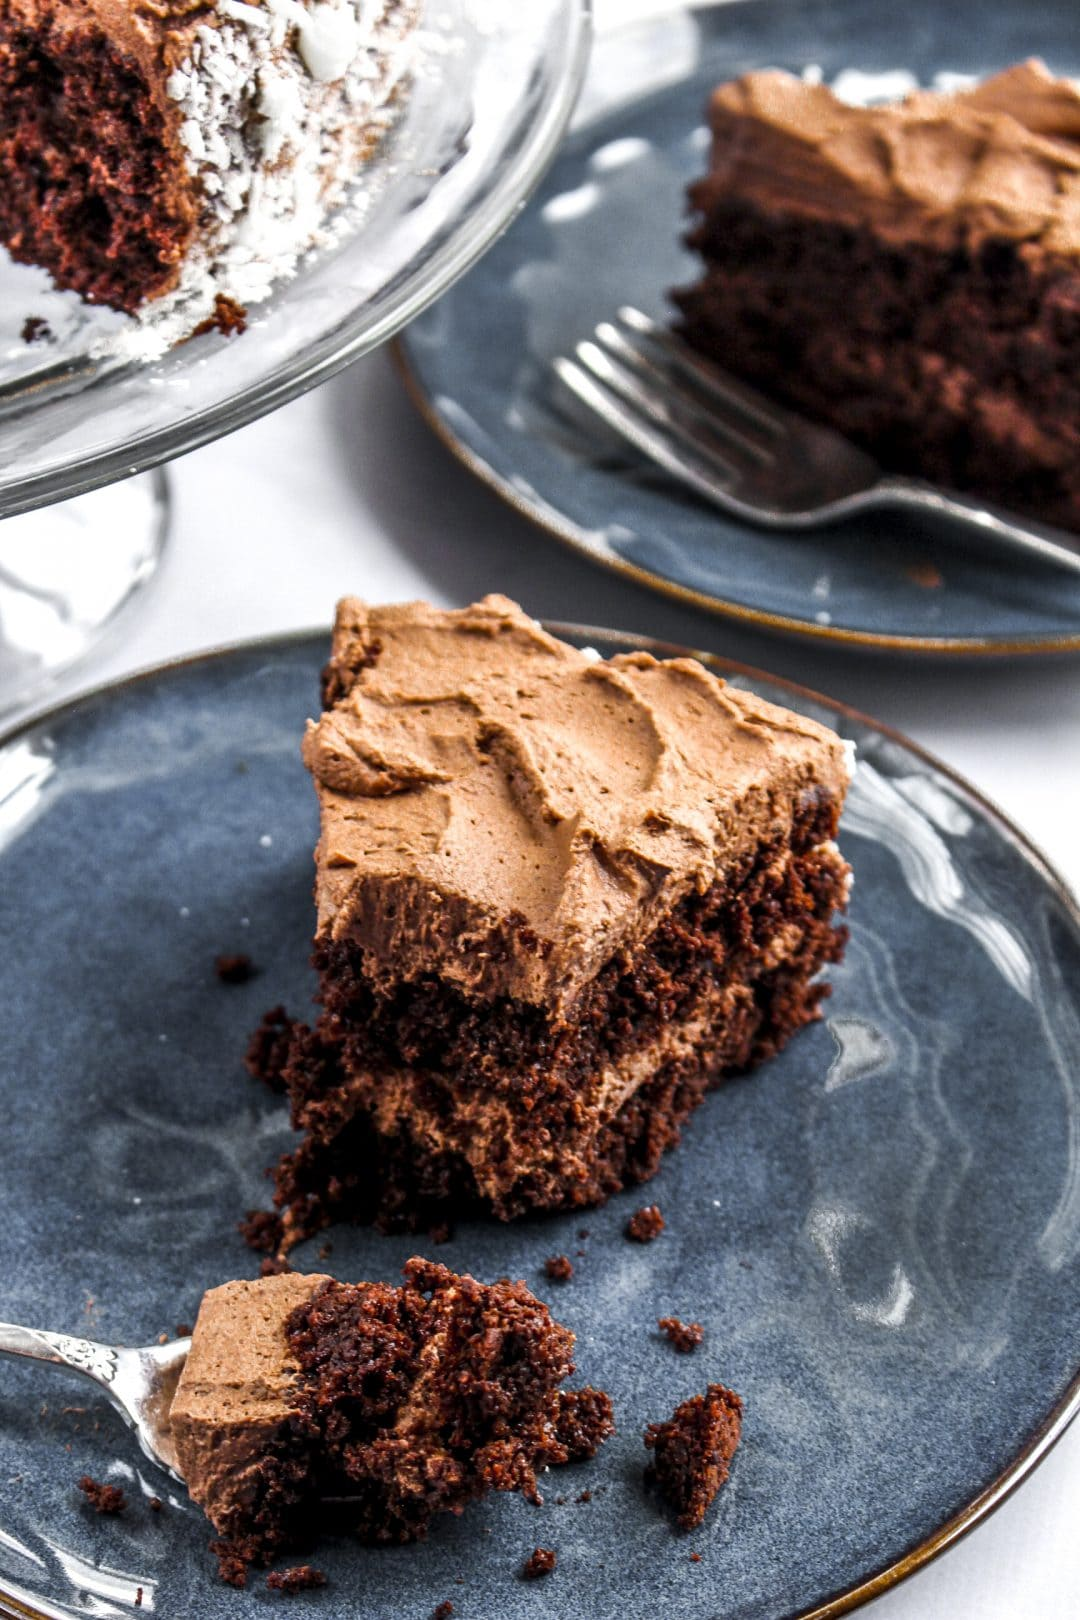 Quinoa cake is a decadent (flourless!) chocolate cake with creamy whipped chocolate ganache. Quinoa cake is made by blending cooked quinoa into the batter instead of using flour, making this cake naturally gluten free.